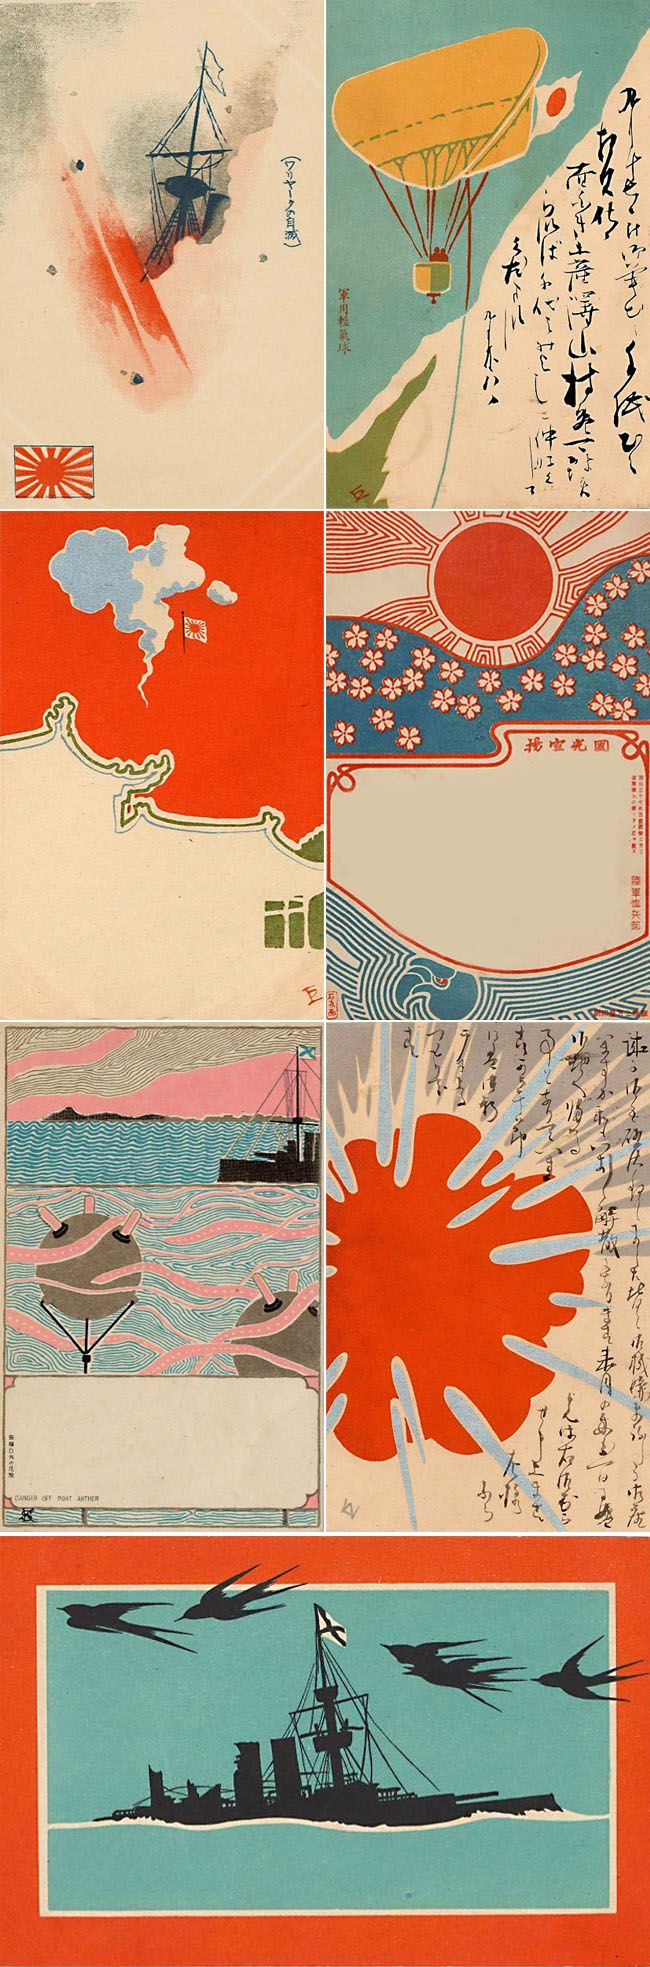 Vintage Japanese postcards; Leonard A. Lauder Collection of Japanese Postcards at the Museum of Fine Arts, Boston #vintage #postcard #postcards #collection #collectibles #Japanese #blue #orange #blue_and_orange #antique #ephemera